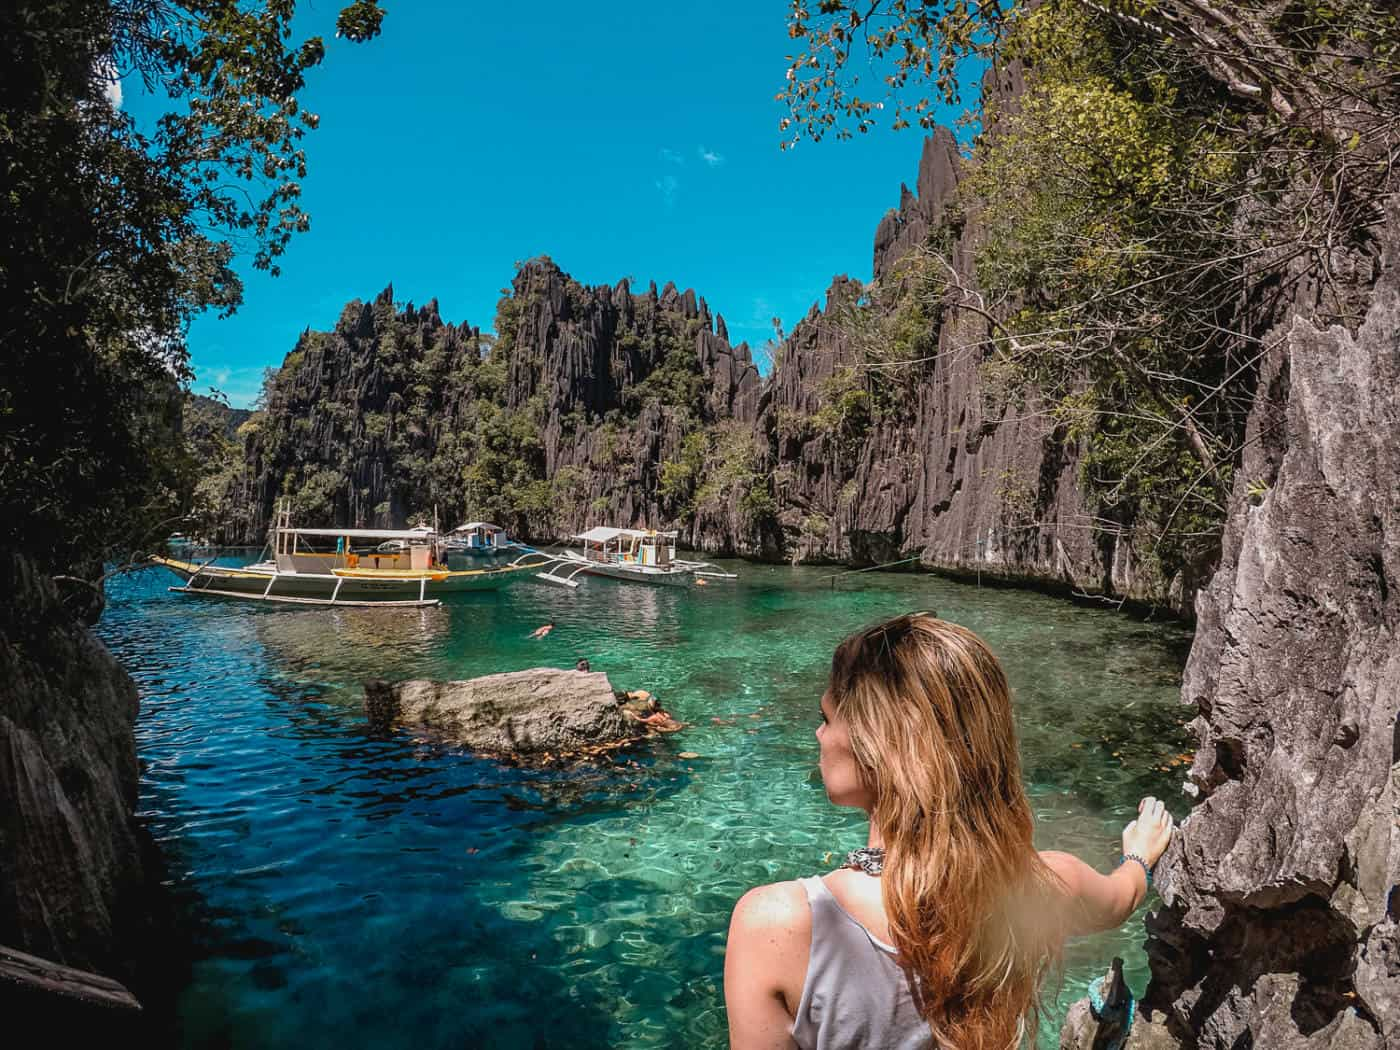 Palawan itinerary: Palawan tour of El Nido and Coron Philippines